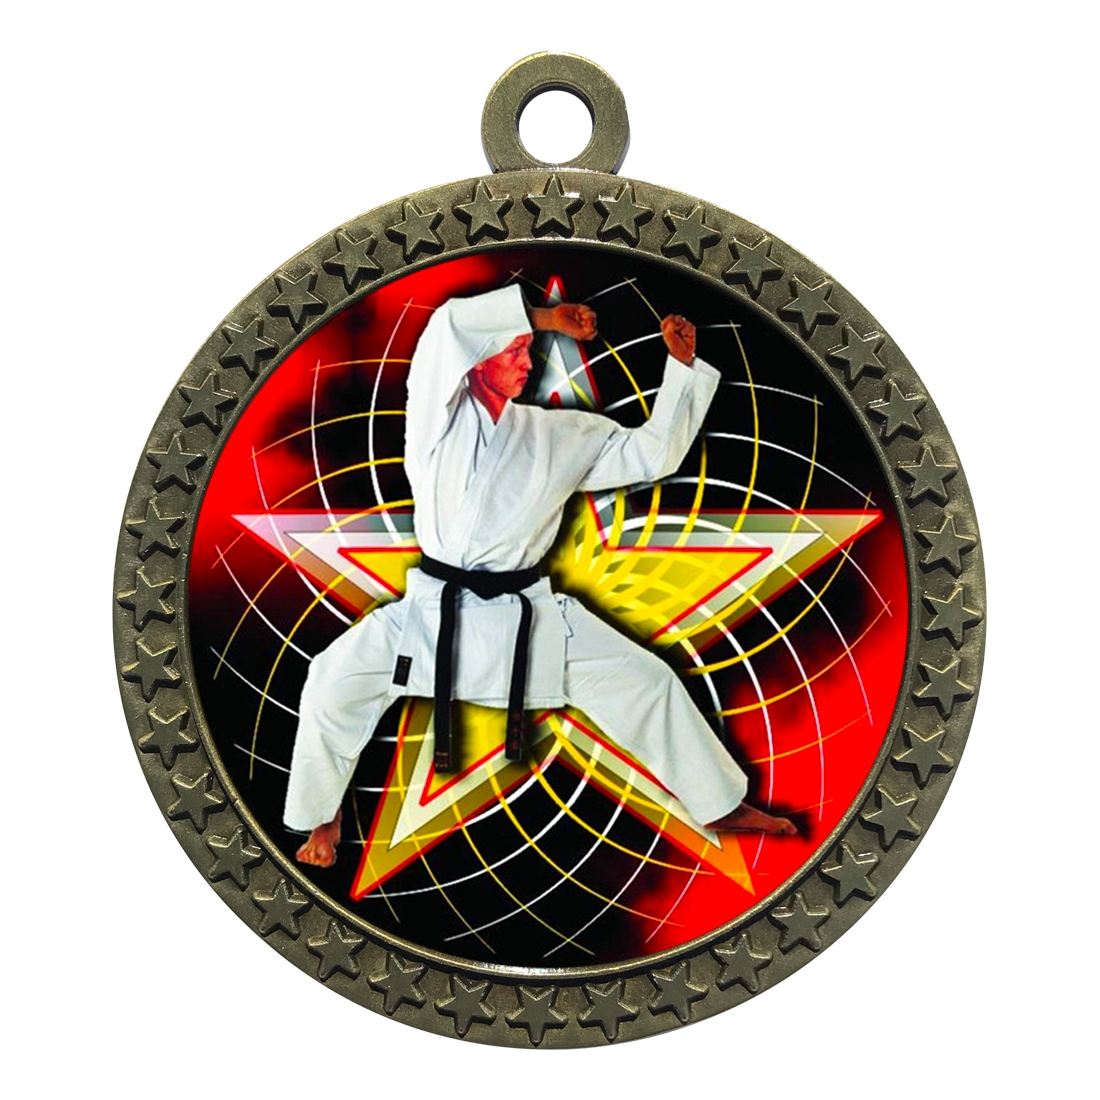 "2-1/2"" Martial Arts Karate Medal"